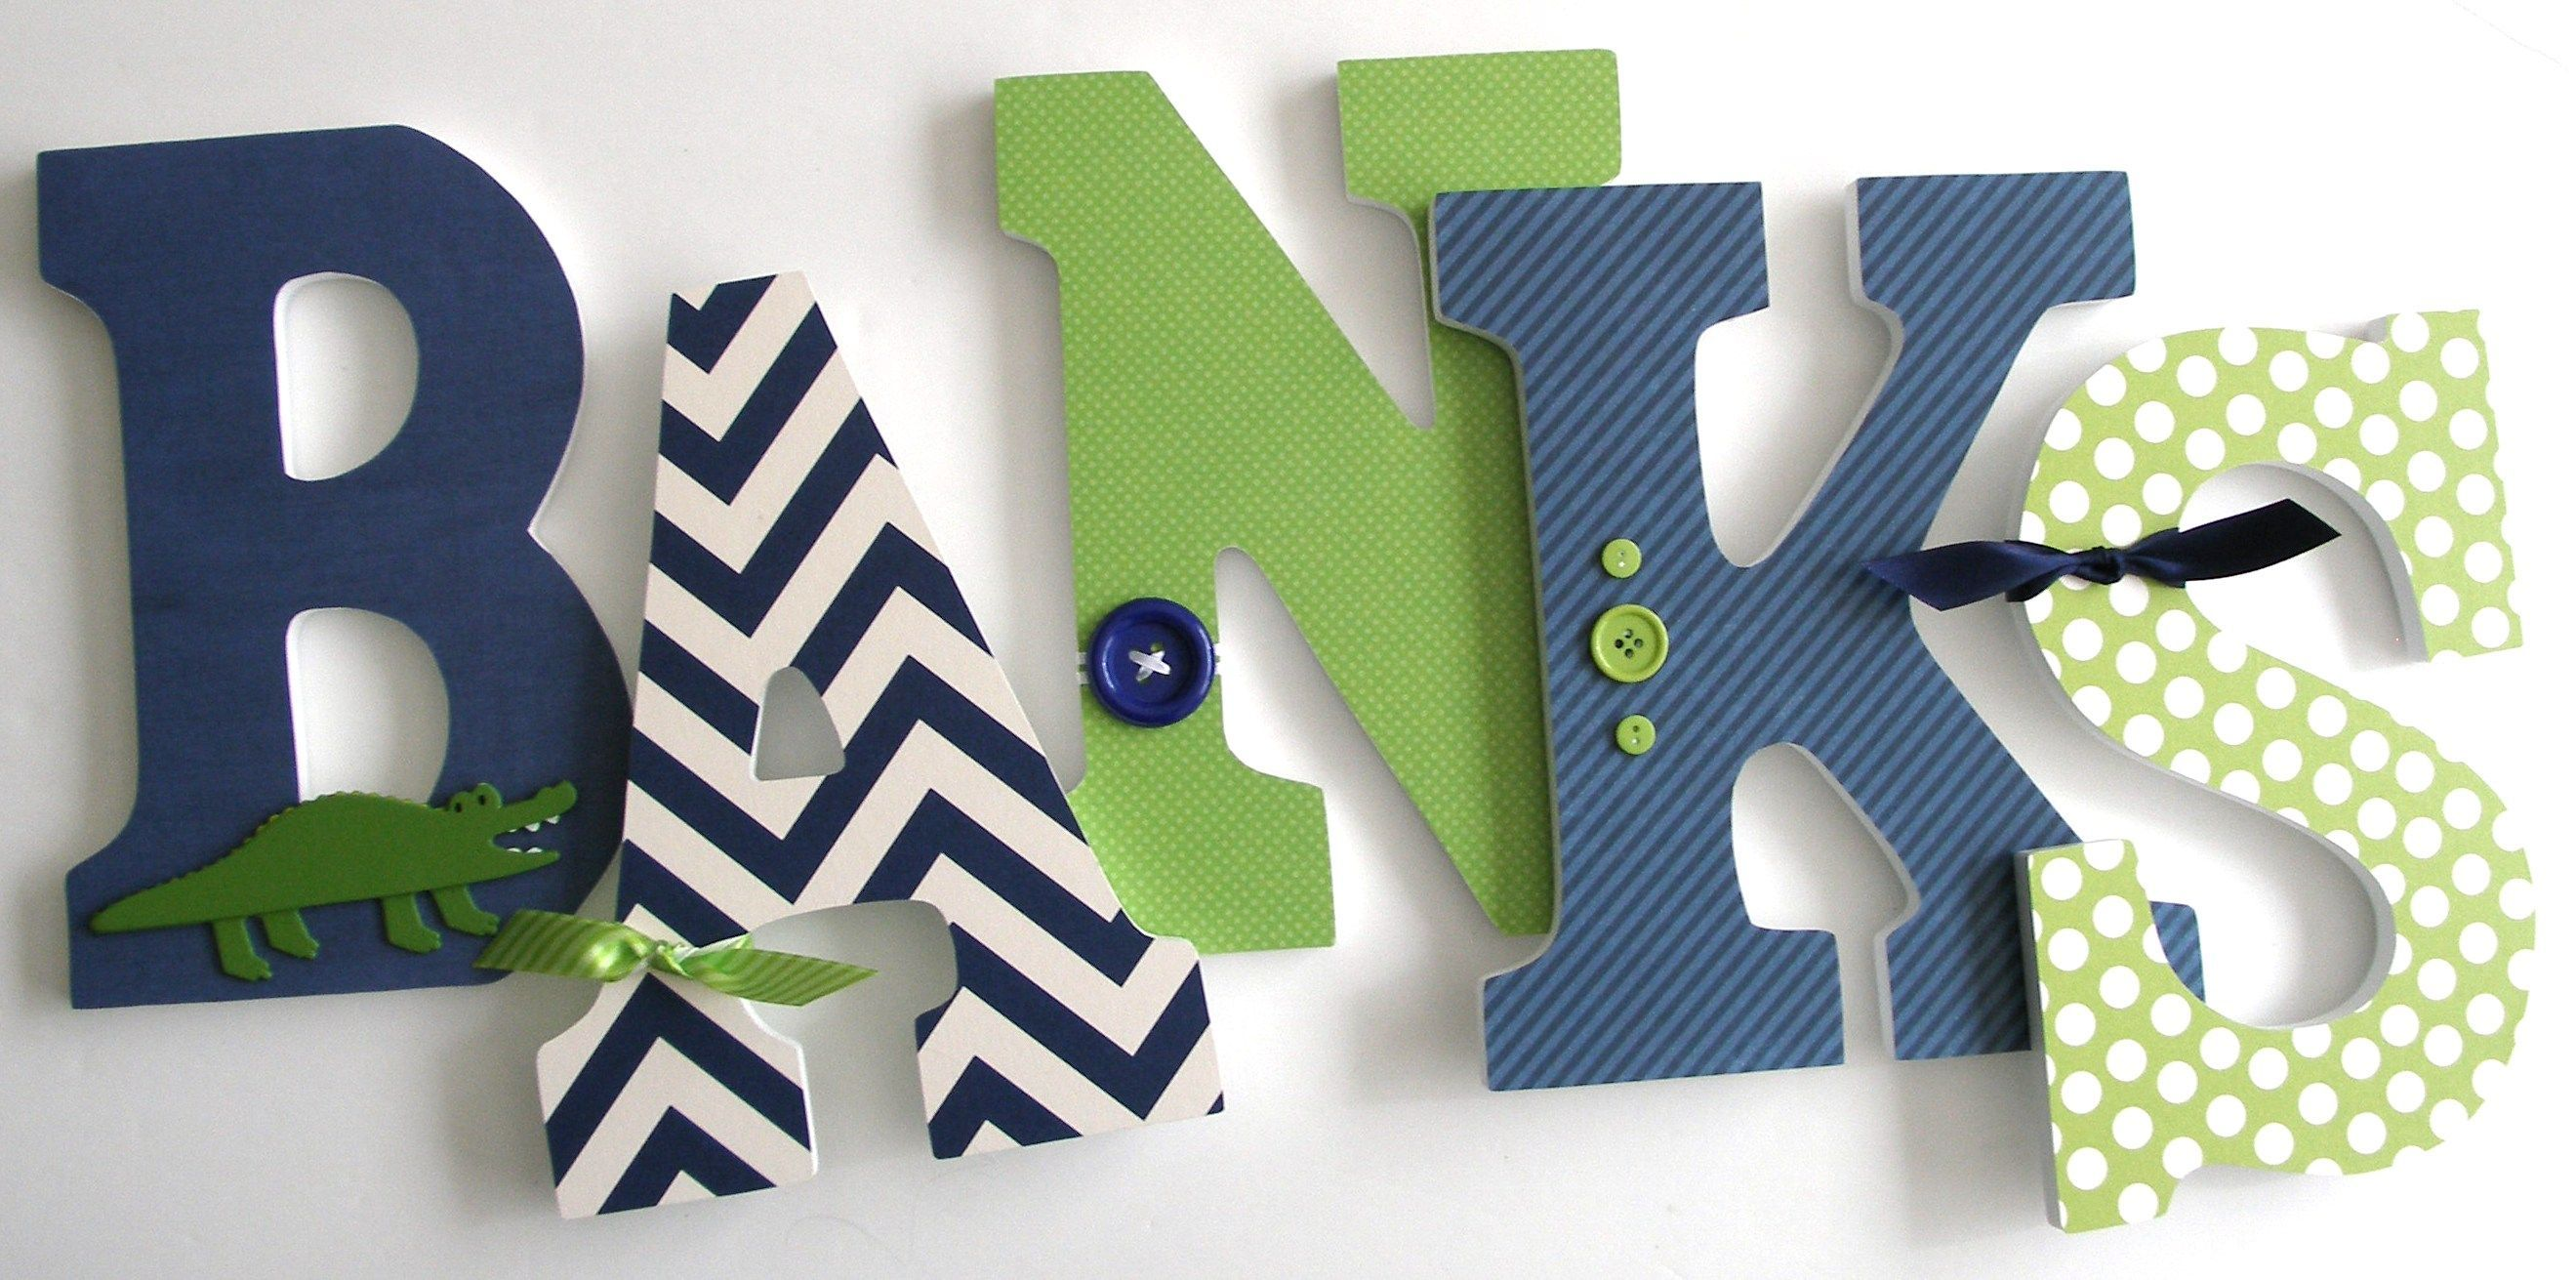 Bedroom Decor Letters custom made navy blue and green wooden letters - baby room decor